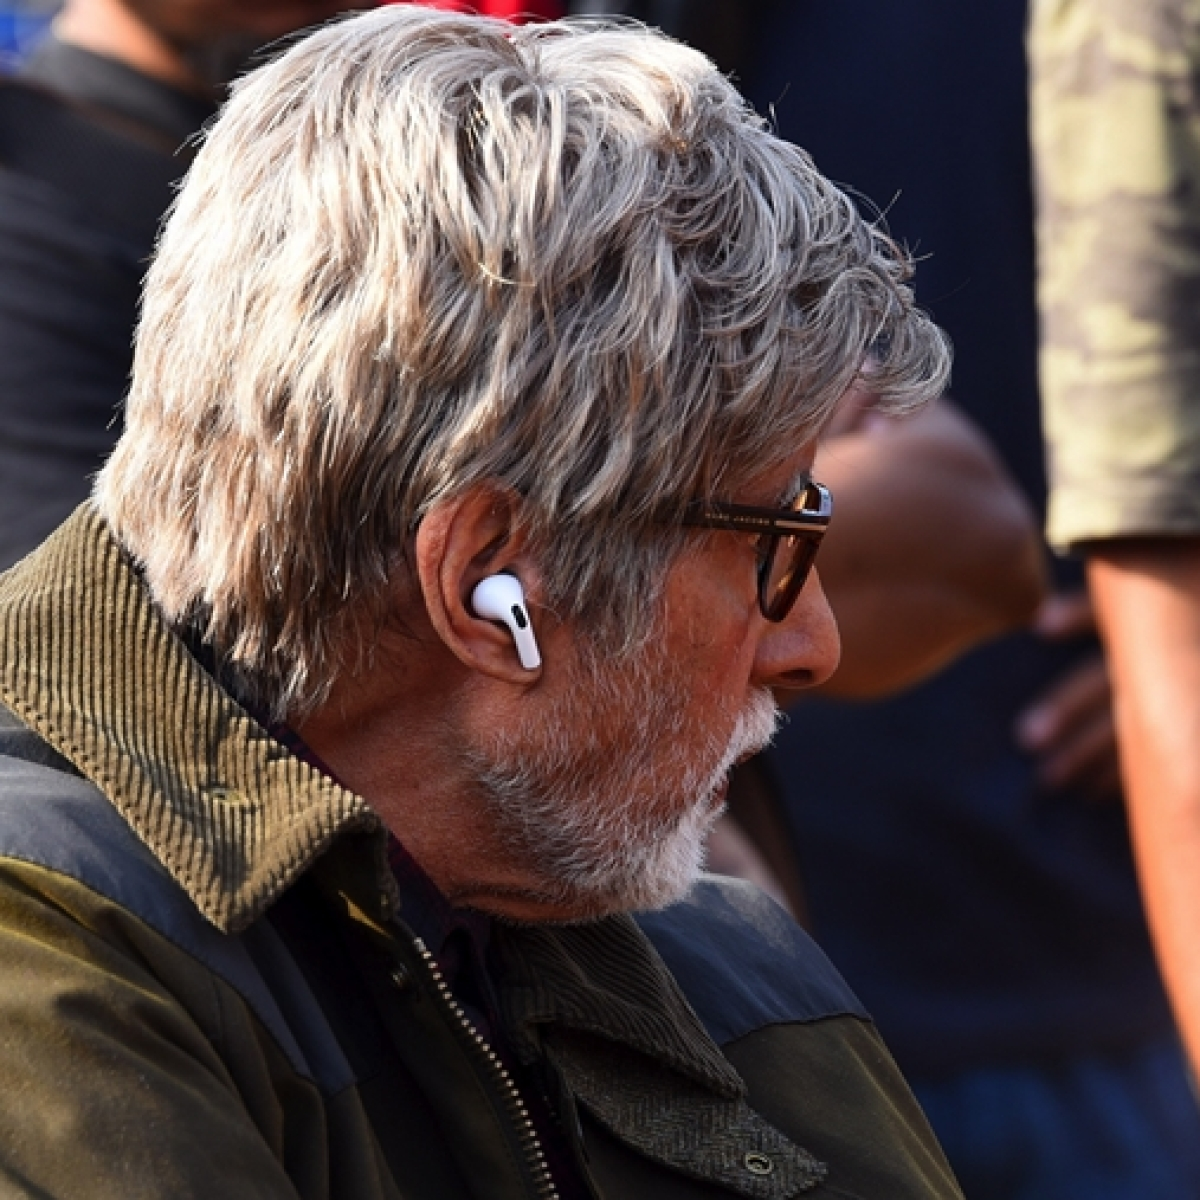 Amitabh Bachchan has a new name for Apple's airpods and it's better than the original